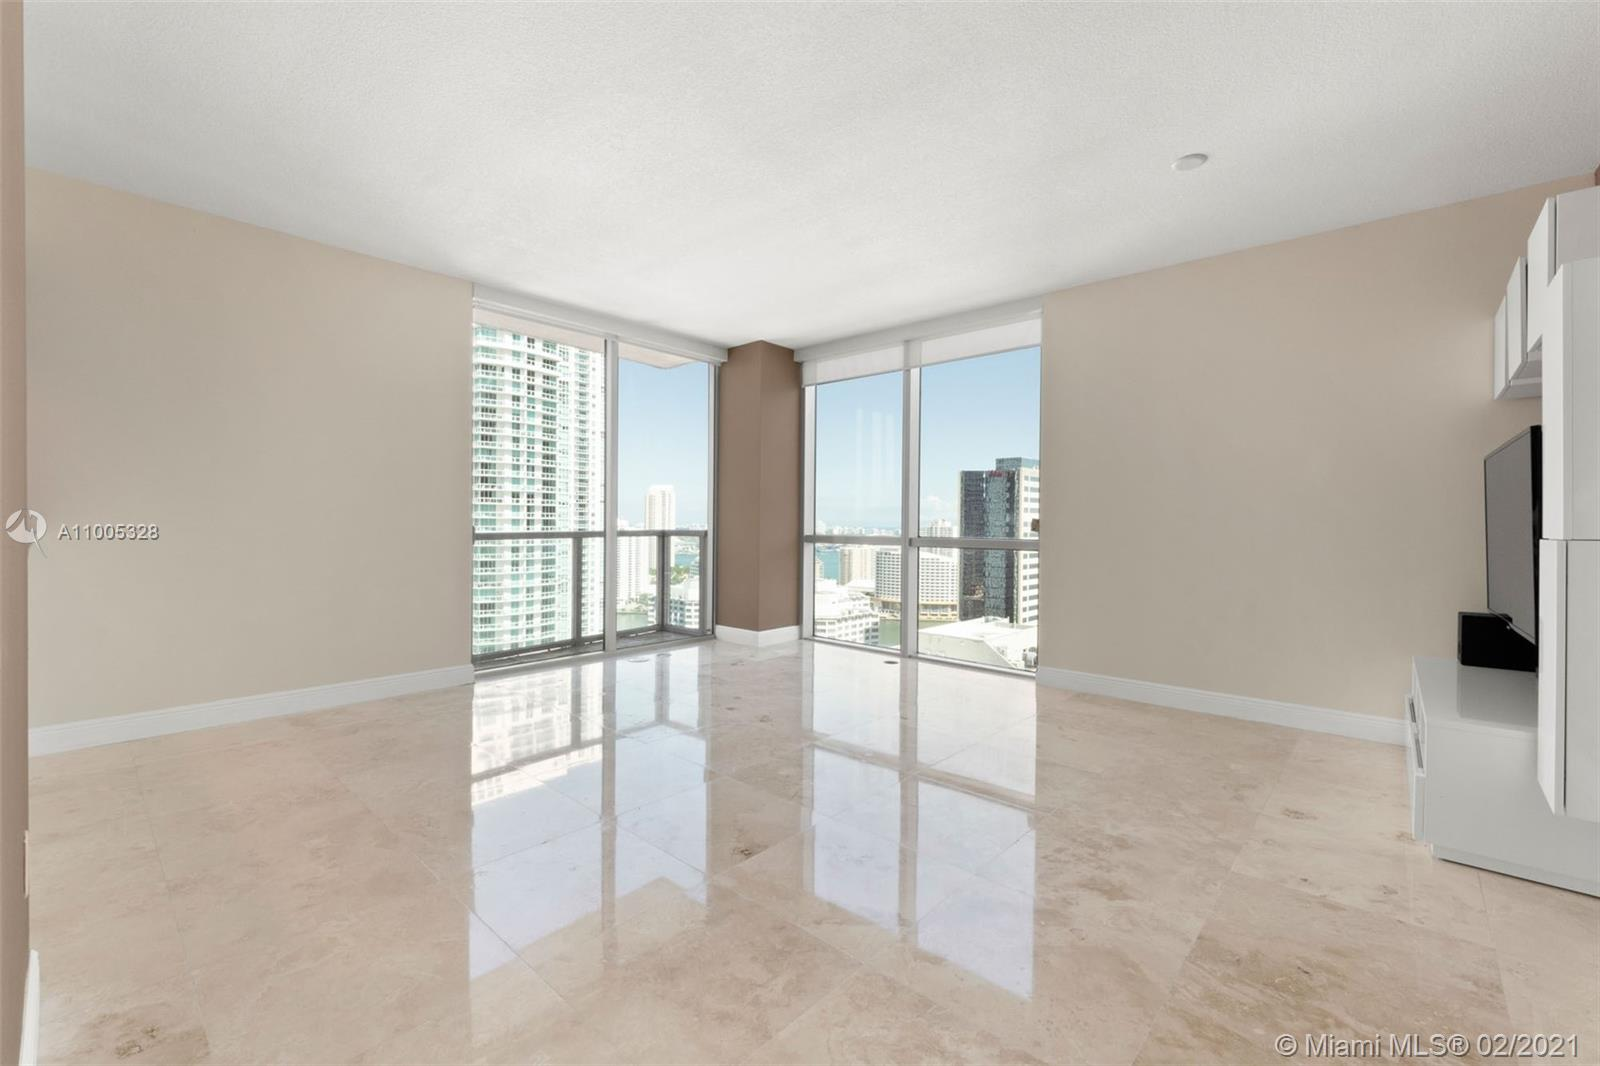 Stunning turn-key residence in the Heart of Brickell! This 2 Bed/2.5 Bath luxury condo in the highly desirable 01 lines is located in the prestigious 1060 Brickell building. Featuring tile floors throughout and high-end finishes, floor-to-ceiling windows fill the space with ample natural lighting. With breathtaking water and city views surrounding on all sides, multiple balconies allow pure enjoyment of the indoor/outdoor space. The secure building offers 5-star amenities include a sparkling pool, state-of-the-art fitness center, golf simulator, concierge, valet, and more. Ideal location with shopping, dining, and entertainment just steps away.